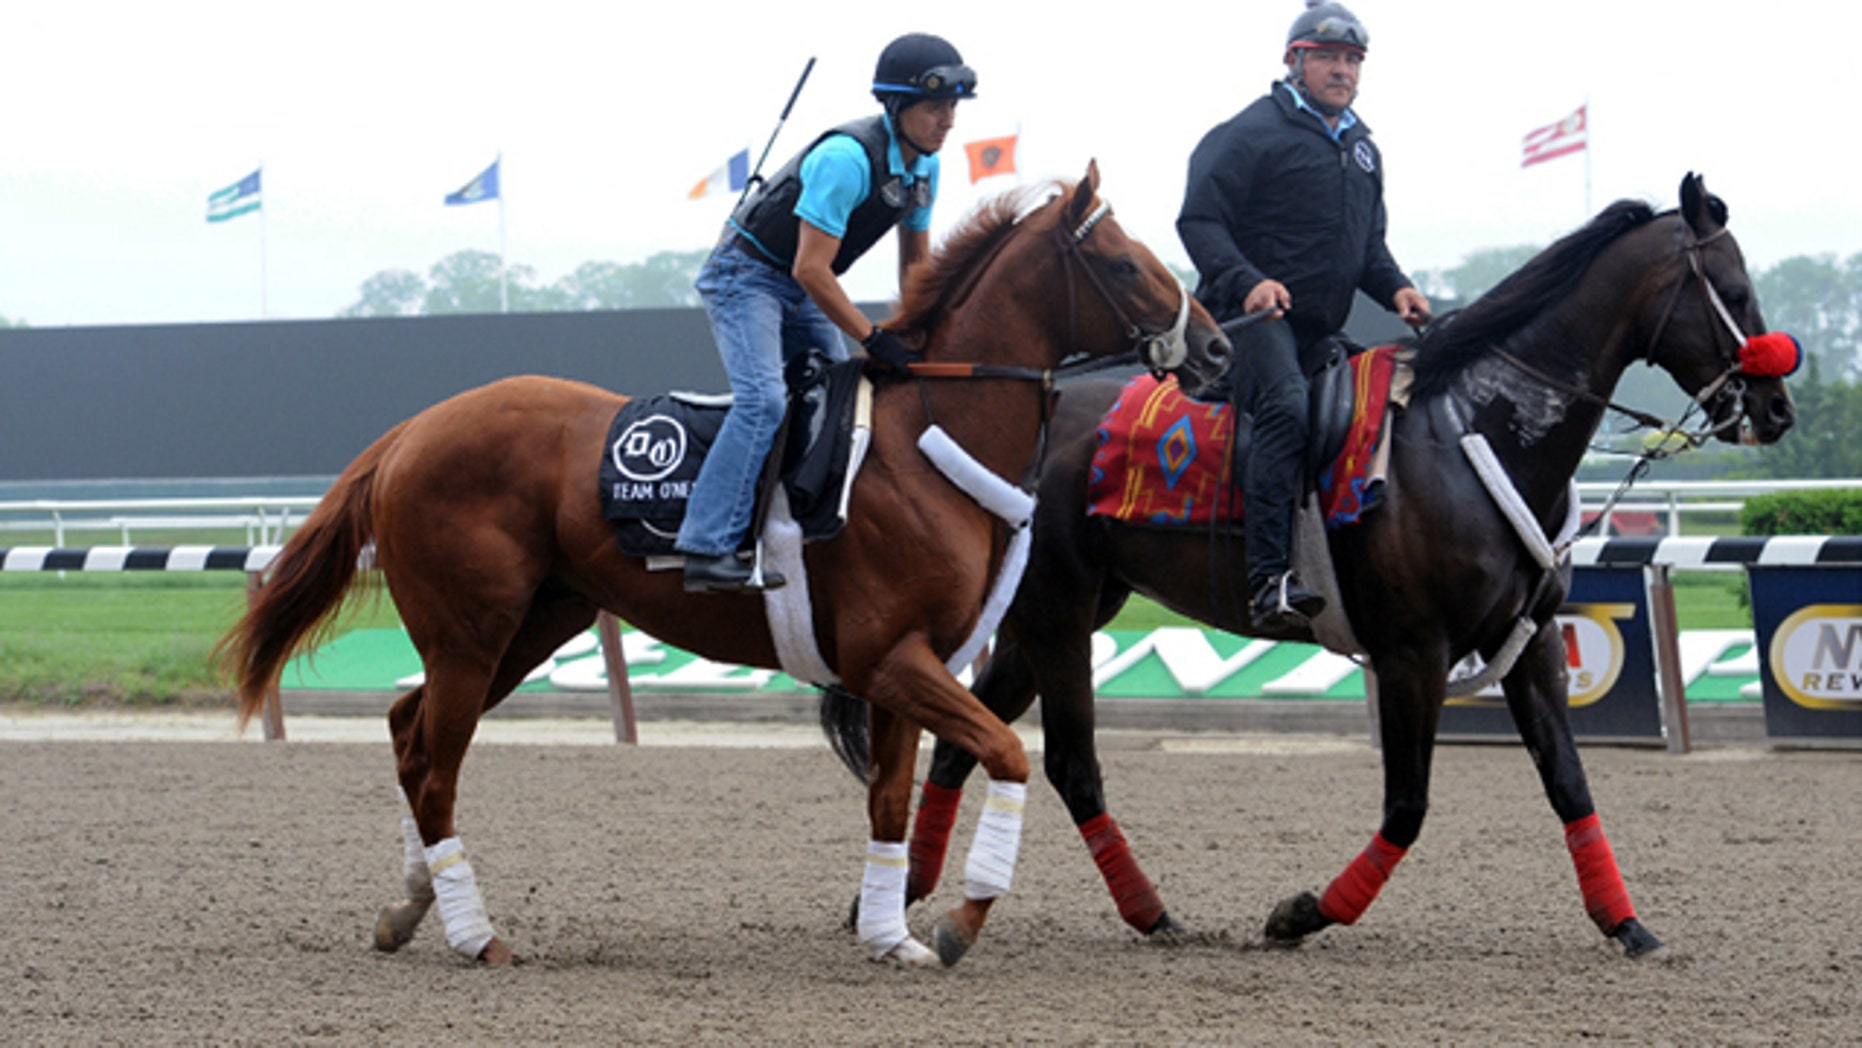 May 24: Triple Crown hopeful I'll Have Another, left, exercise rider Hector Ramos up, is led on the track at Belmont Park in Elmont, N.Y.